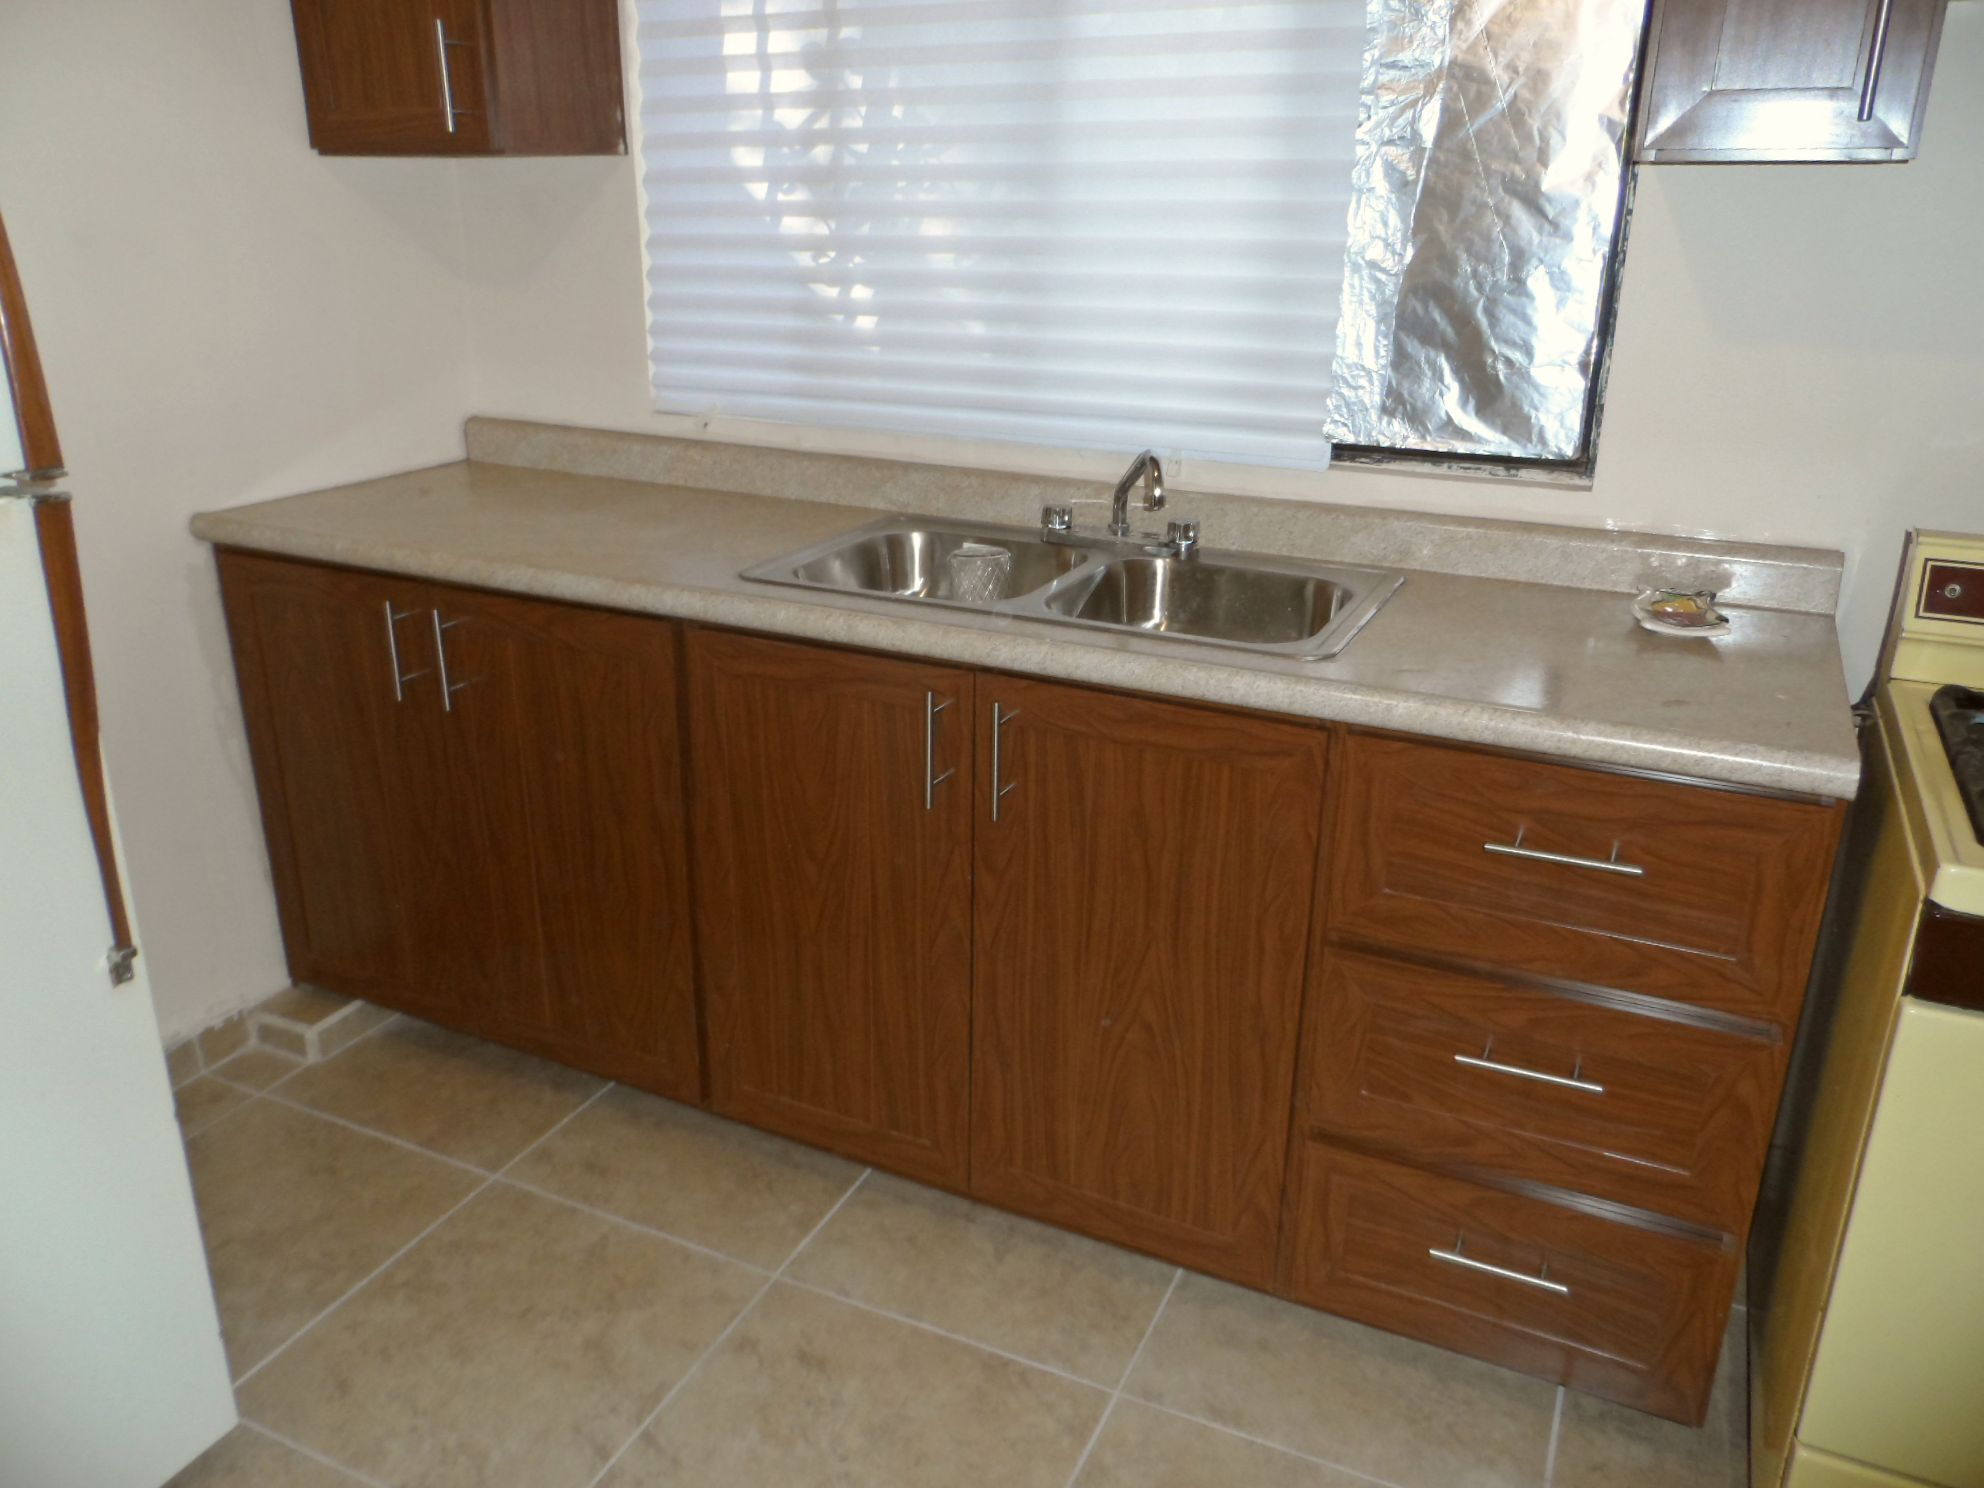 Cabinets Plastic Kitchen Cabinets Rigid Plastic Kitchen Cabinets Rigid